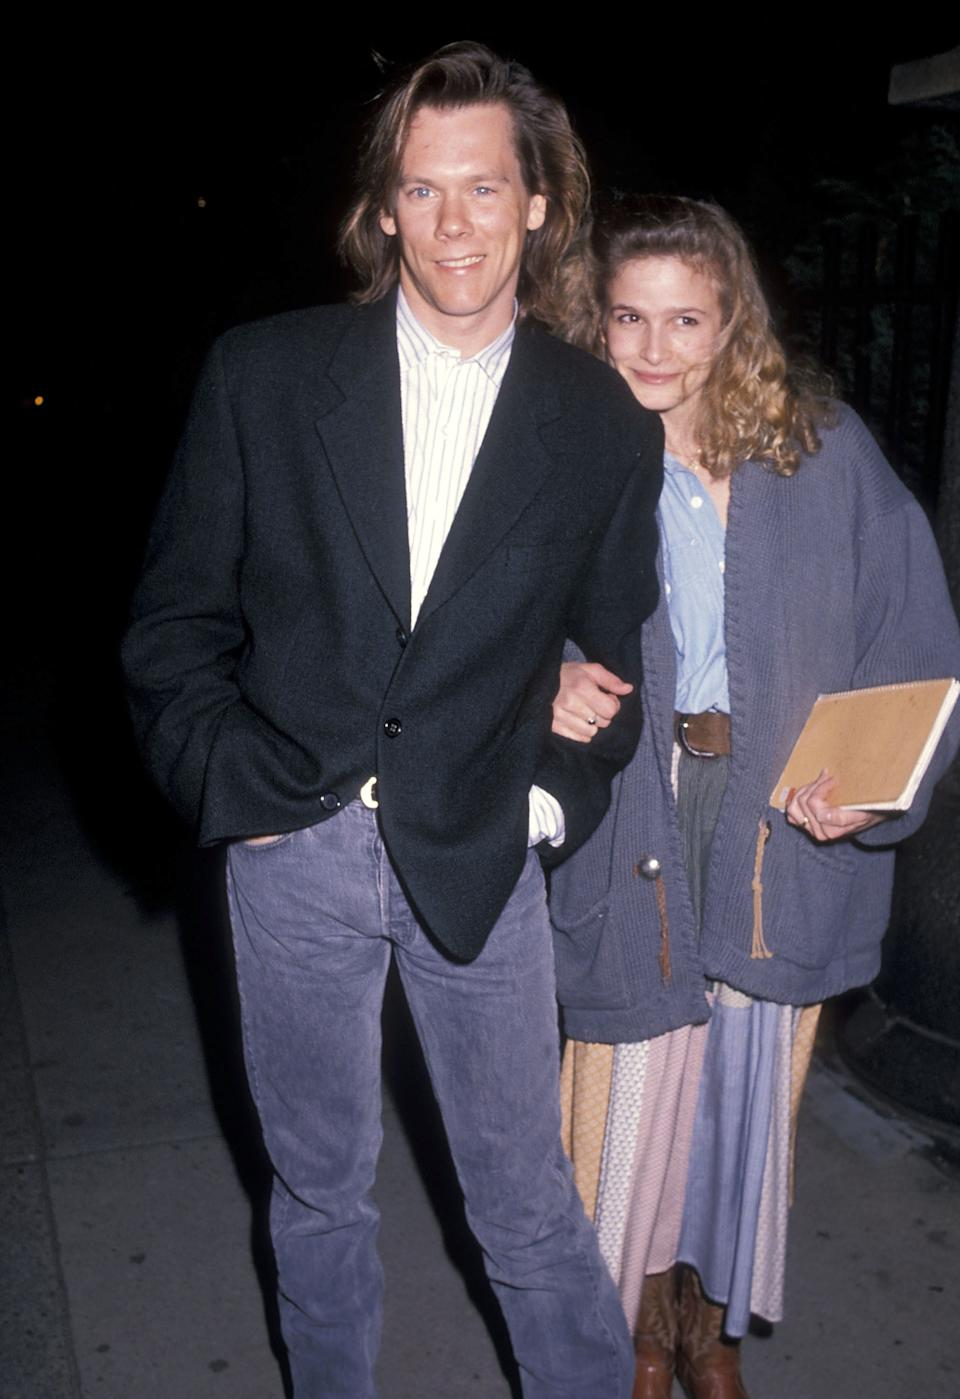 "<h1 class=""title"">Square Dancing and Country-Western Party to Benefi the Second Stage Theatre</h1> <div class=""caption""> Kevin Bacon and Kyra Sedgwick at a benefit in New York in 1990 </div> <cite class=""credit"">Getty Images</cite>"